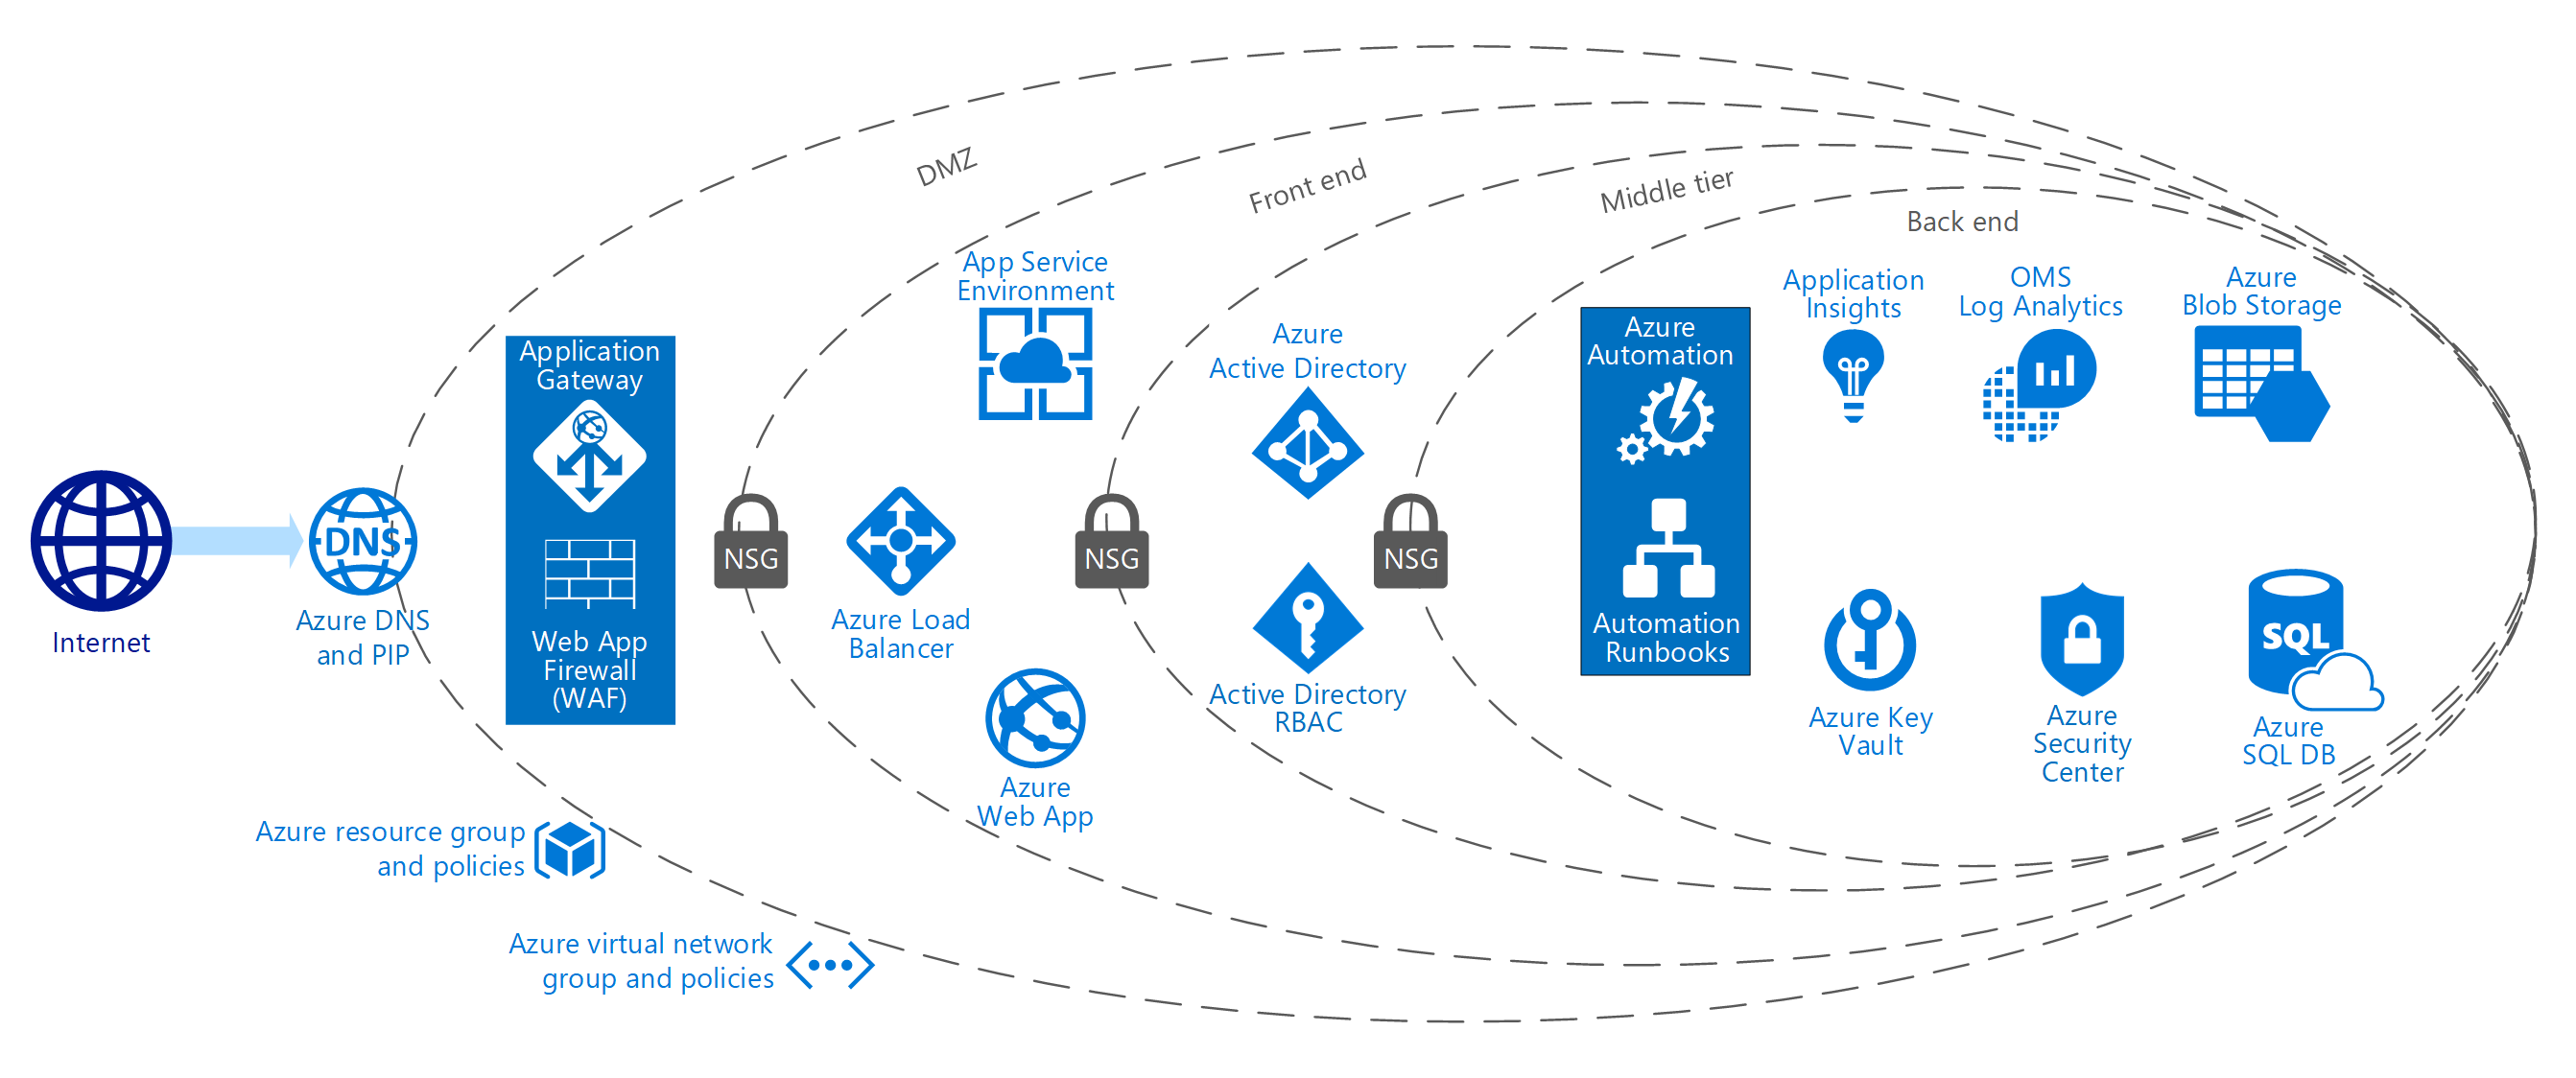 Azure security and compliance blueprint for pci dss compliant azure solutions blueprint malvernweather Choice Image